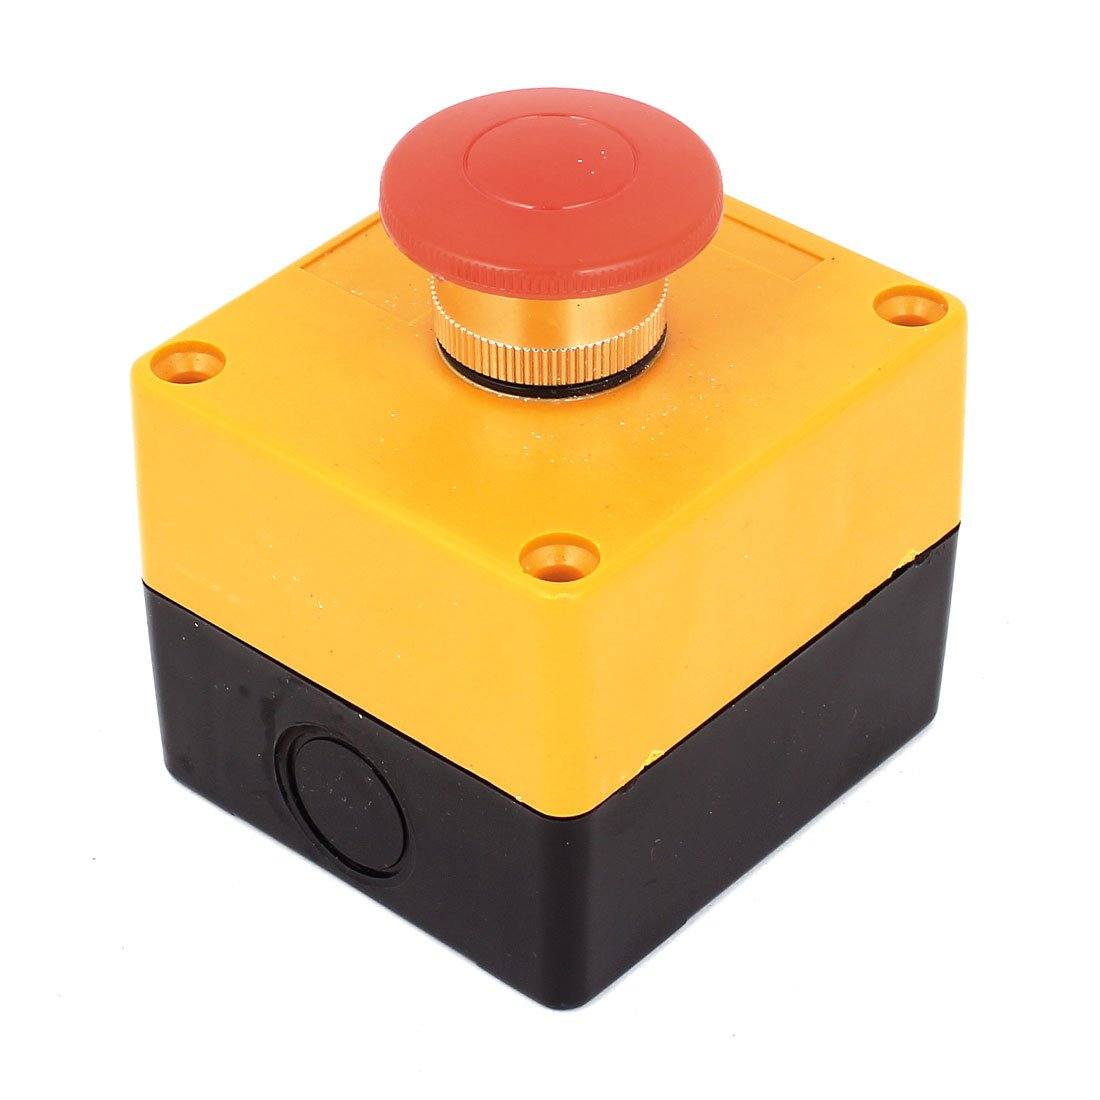 AC 660V 10A 40mm Dia Red Top Momentary DPST Push Button Switch w Box